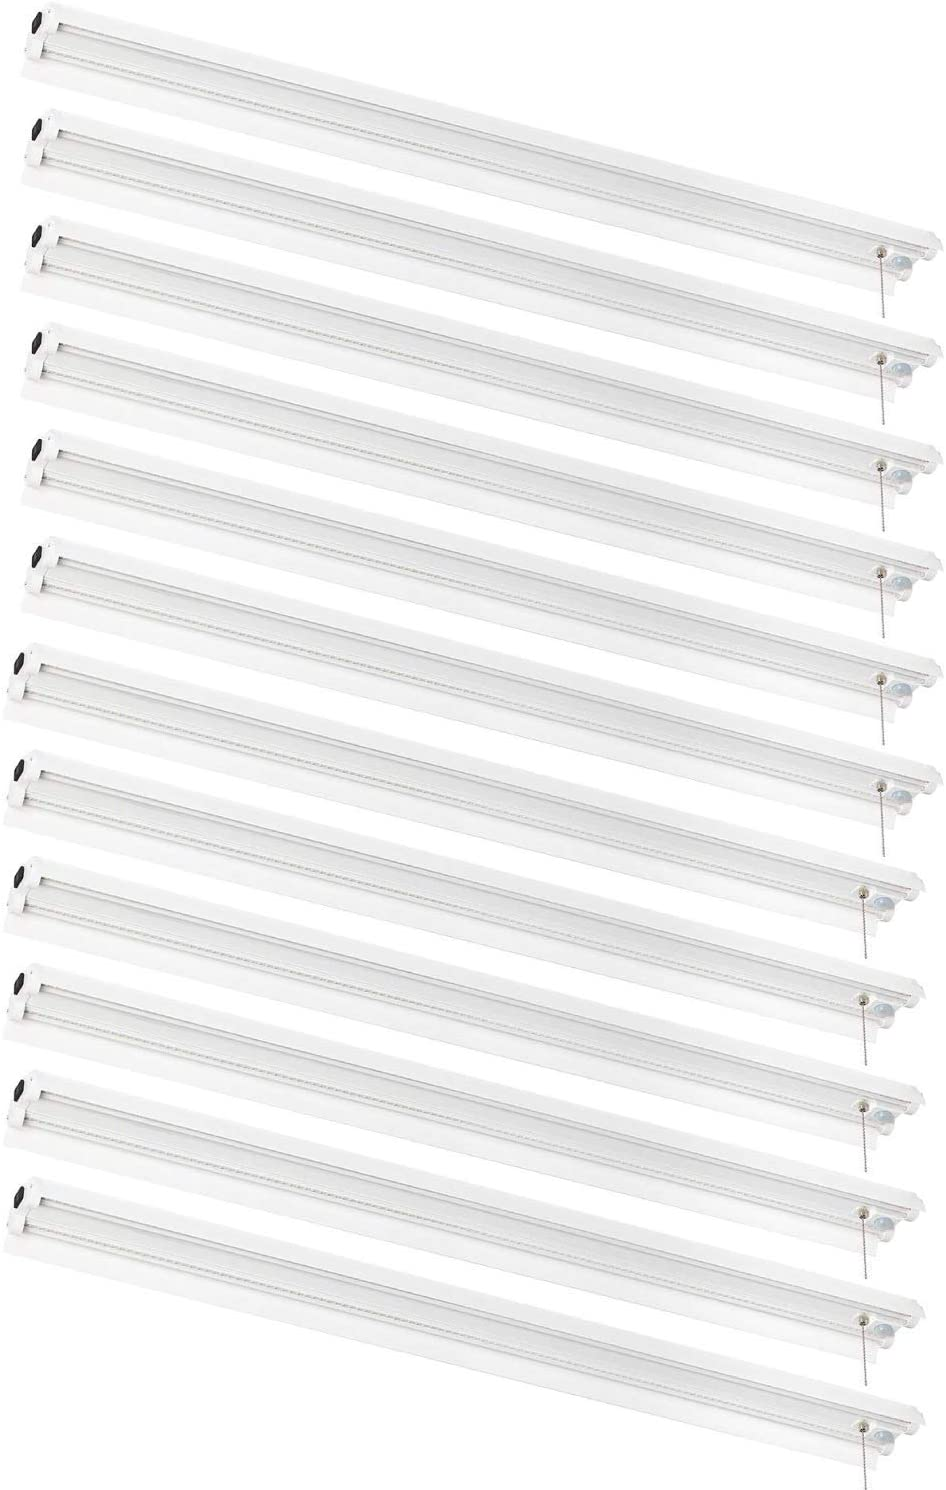 AmazonCommercial Linkable Motion Sensing LED Utility Shop Light with Bypass Switch, 4-Foot, 4500 Lumens, 40 Watt, Energy Star and ETL Certified | Cool White, 12-Pack